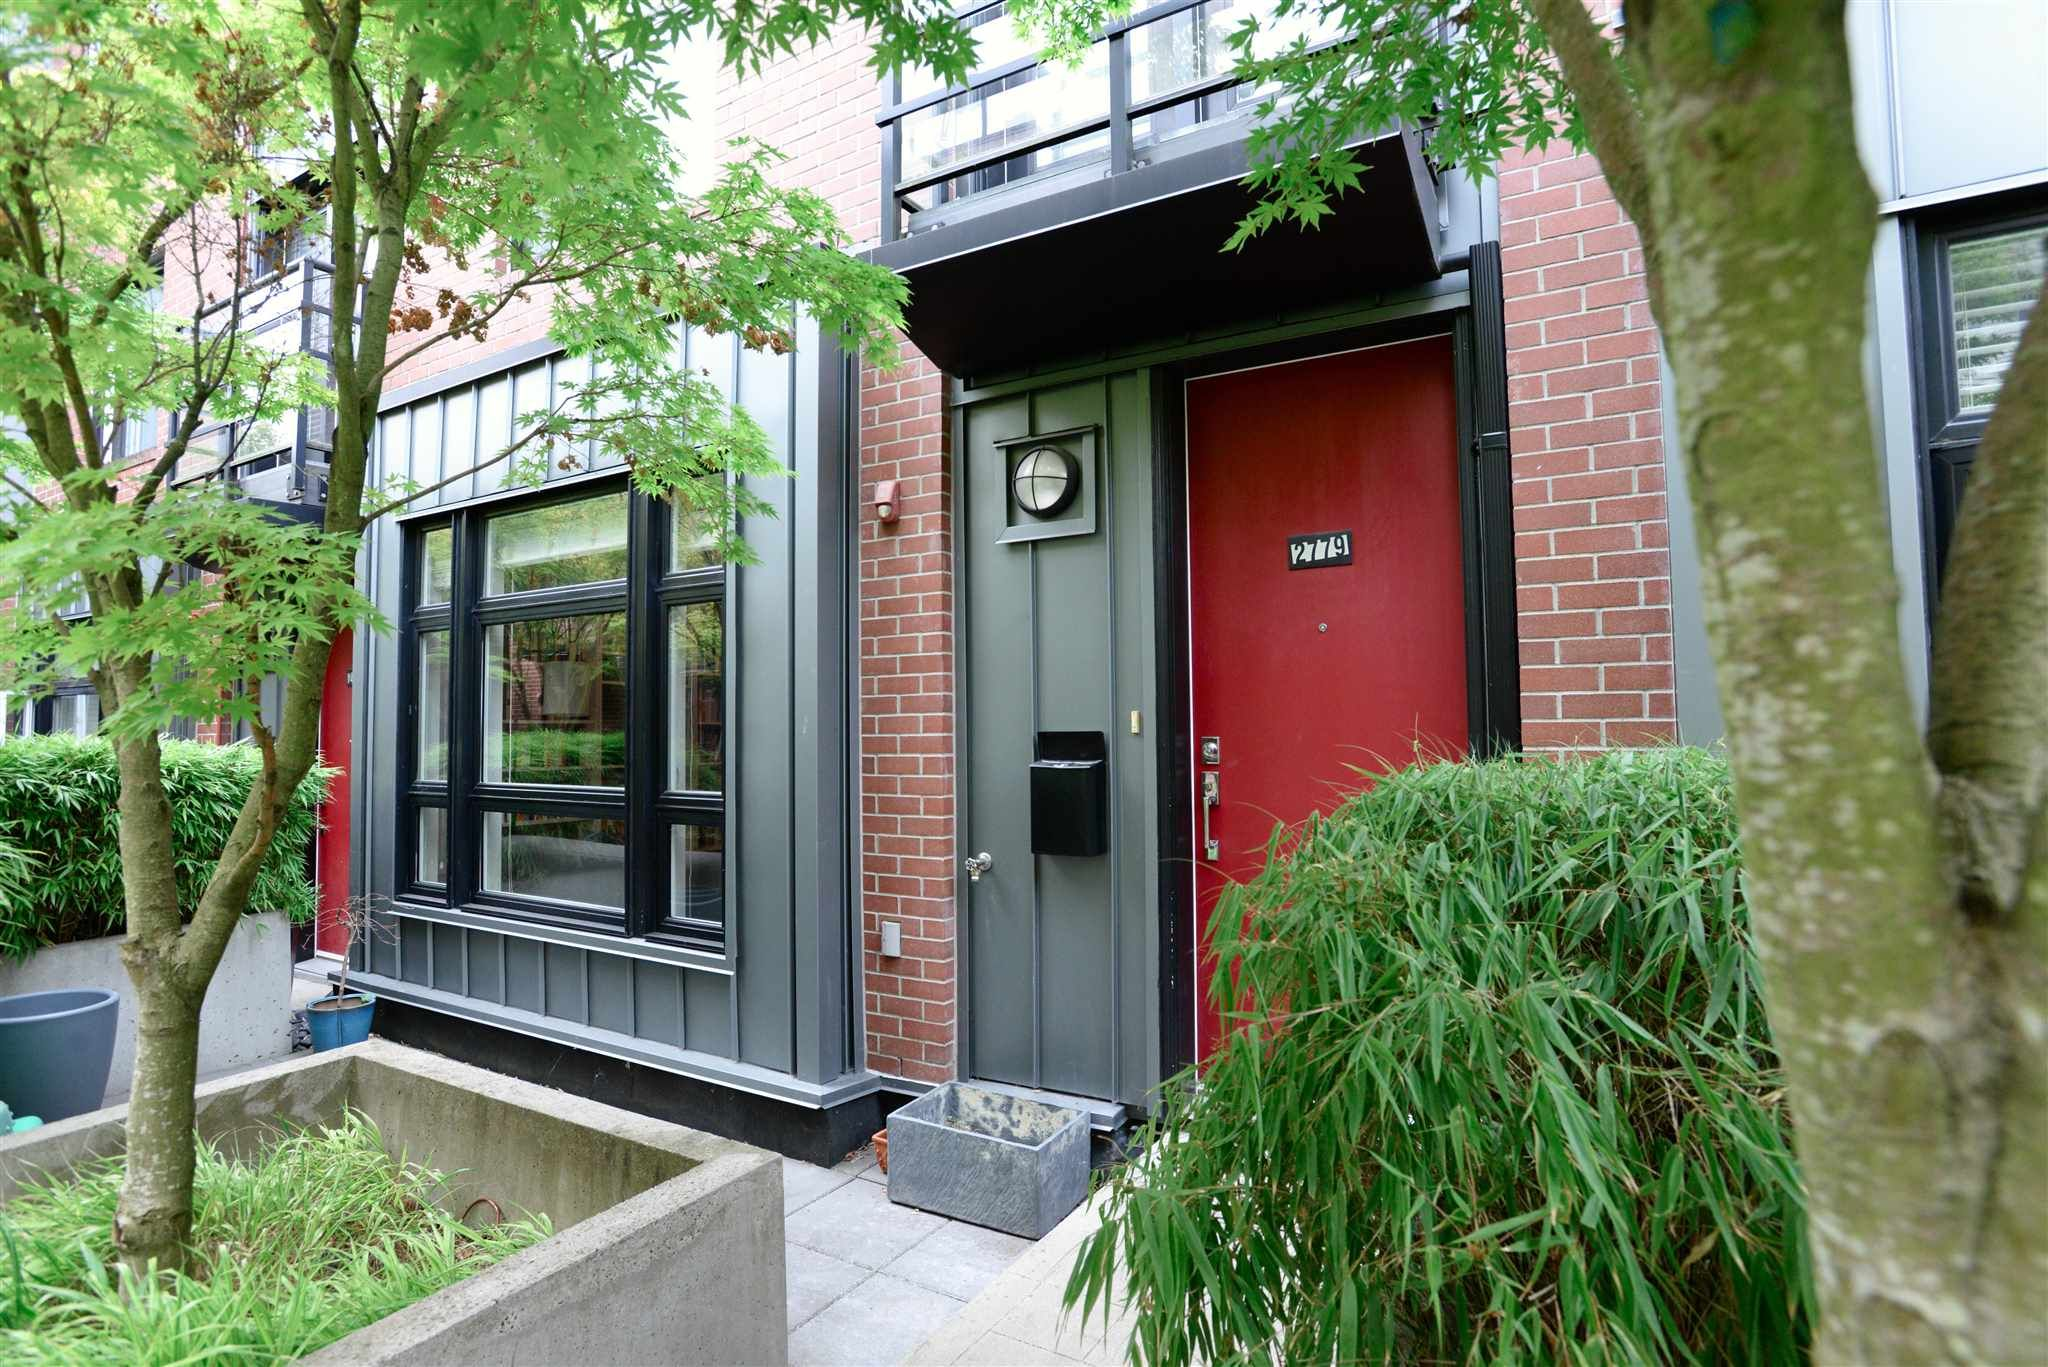 """Main Photo: 2779 GUELPH Street in Vancouver: Mount Pleasant VE Townhouse for sale in """"The Block"""" (Vancouver East)  : MLS®# R2602227"""